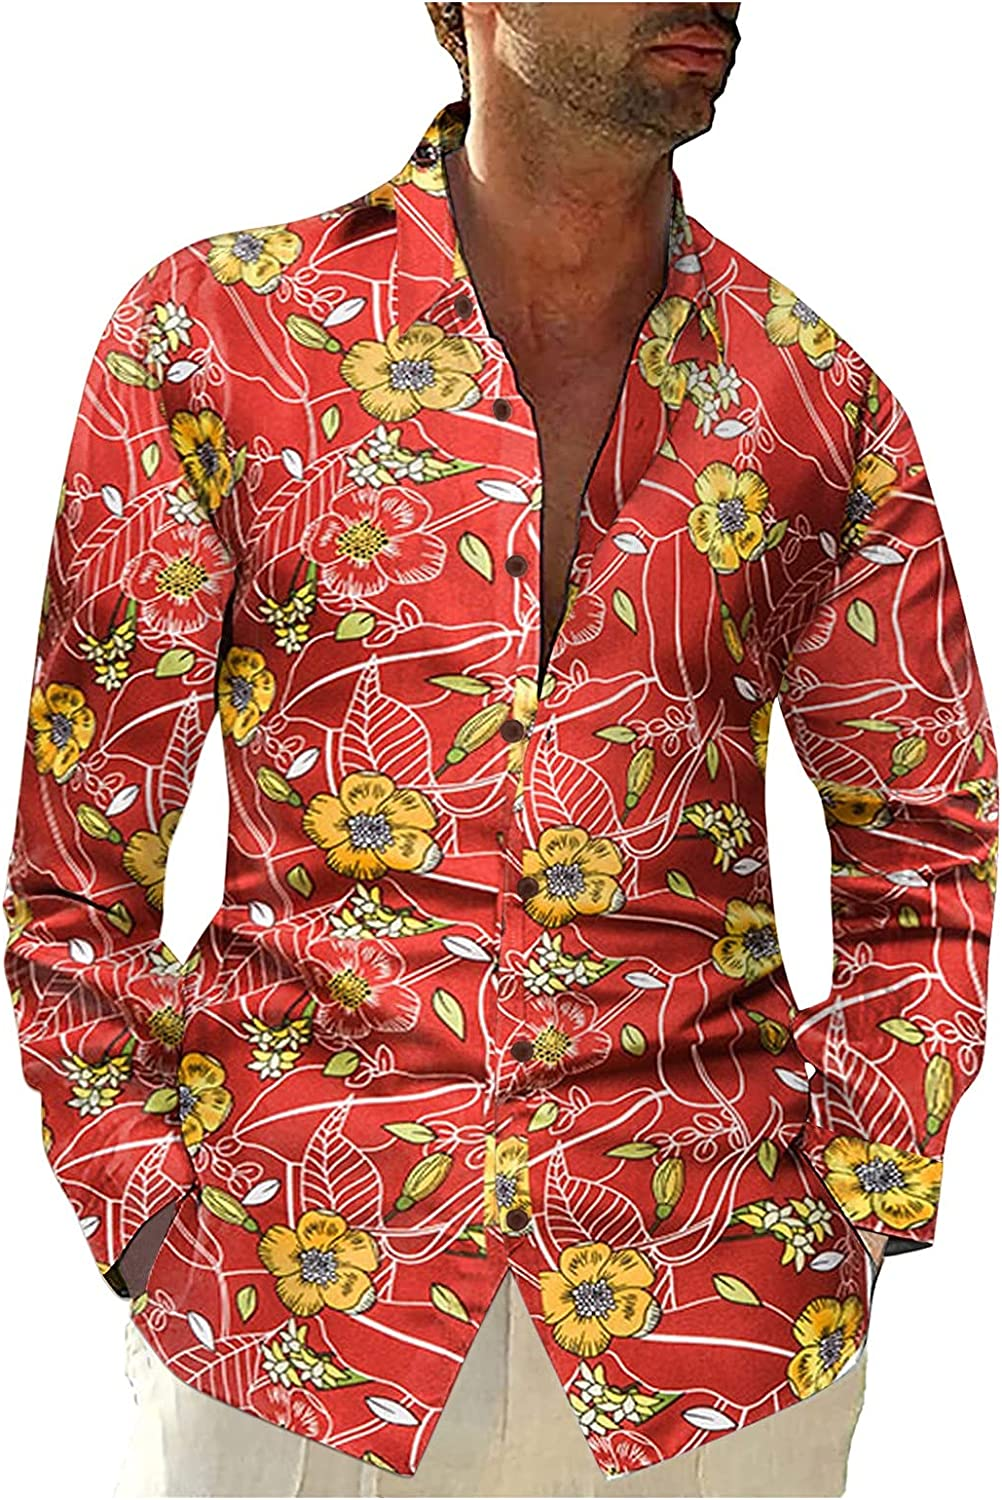 LIEIKIC Men's Floral Printed Long Sleeve Casual Button Down Slim Fit Hawaiian Shirts